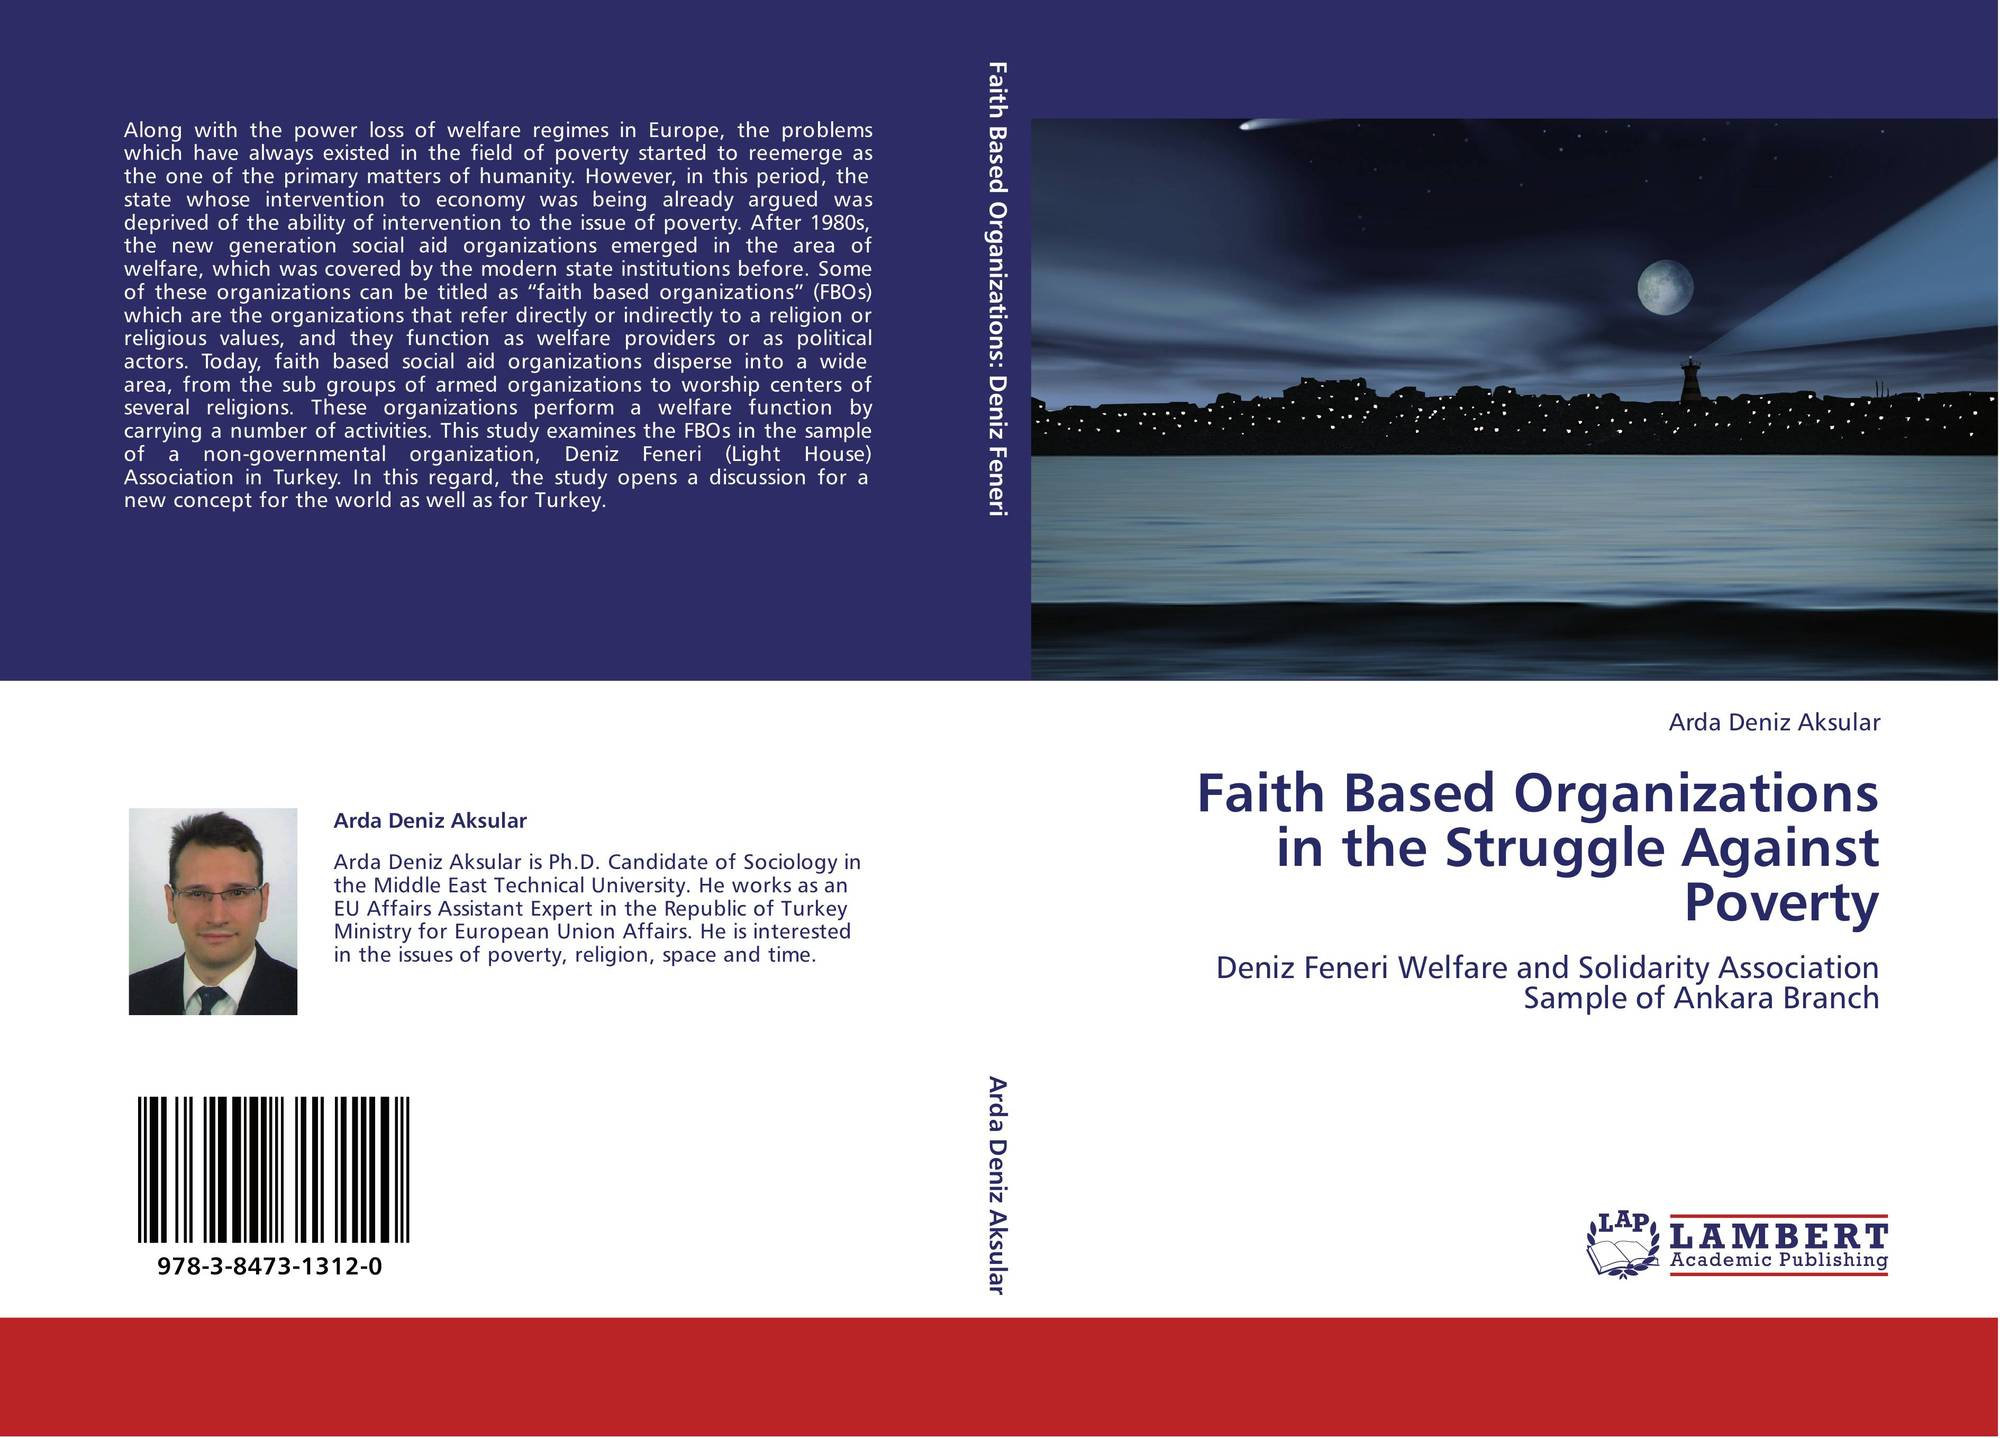 poverty welfare and faith based initiatives Congregations and faith-based organizations have become key participants in america's welfare revolution recent legislation has expanded the social welfare role of religious communities, thus revealing a pervasive lack of faith in purely economic responses to poverty.